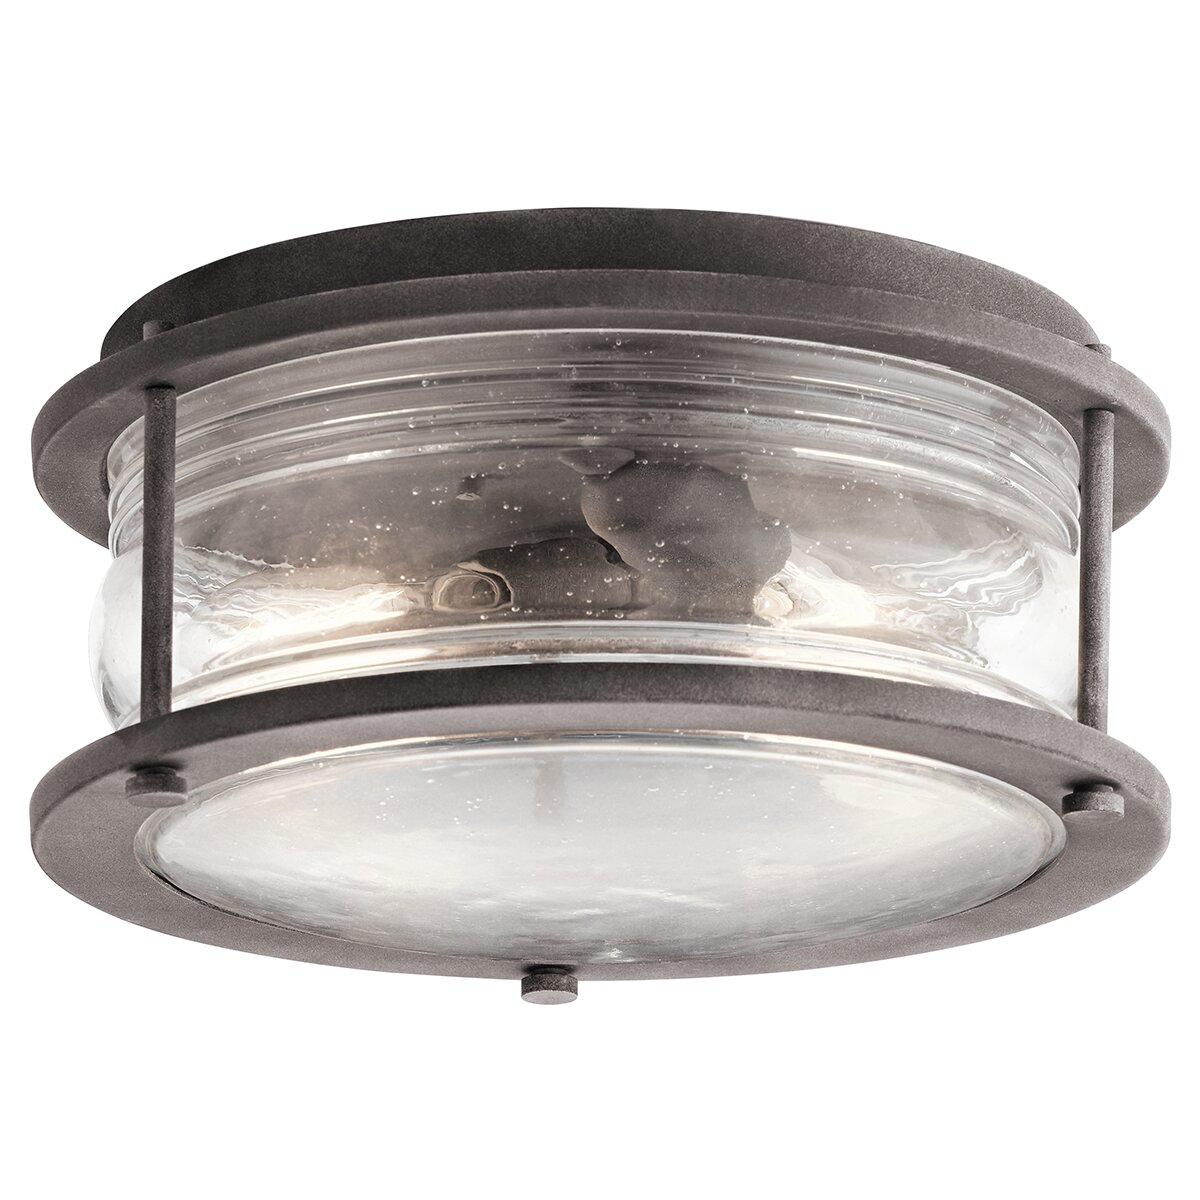 McAdams 2 Light Outdoor Flush Mount